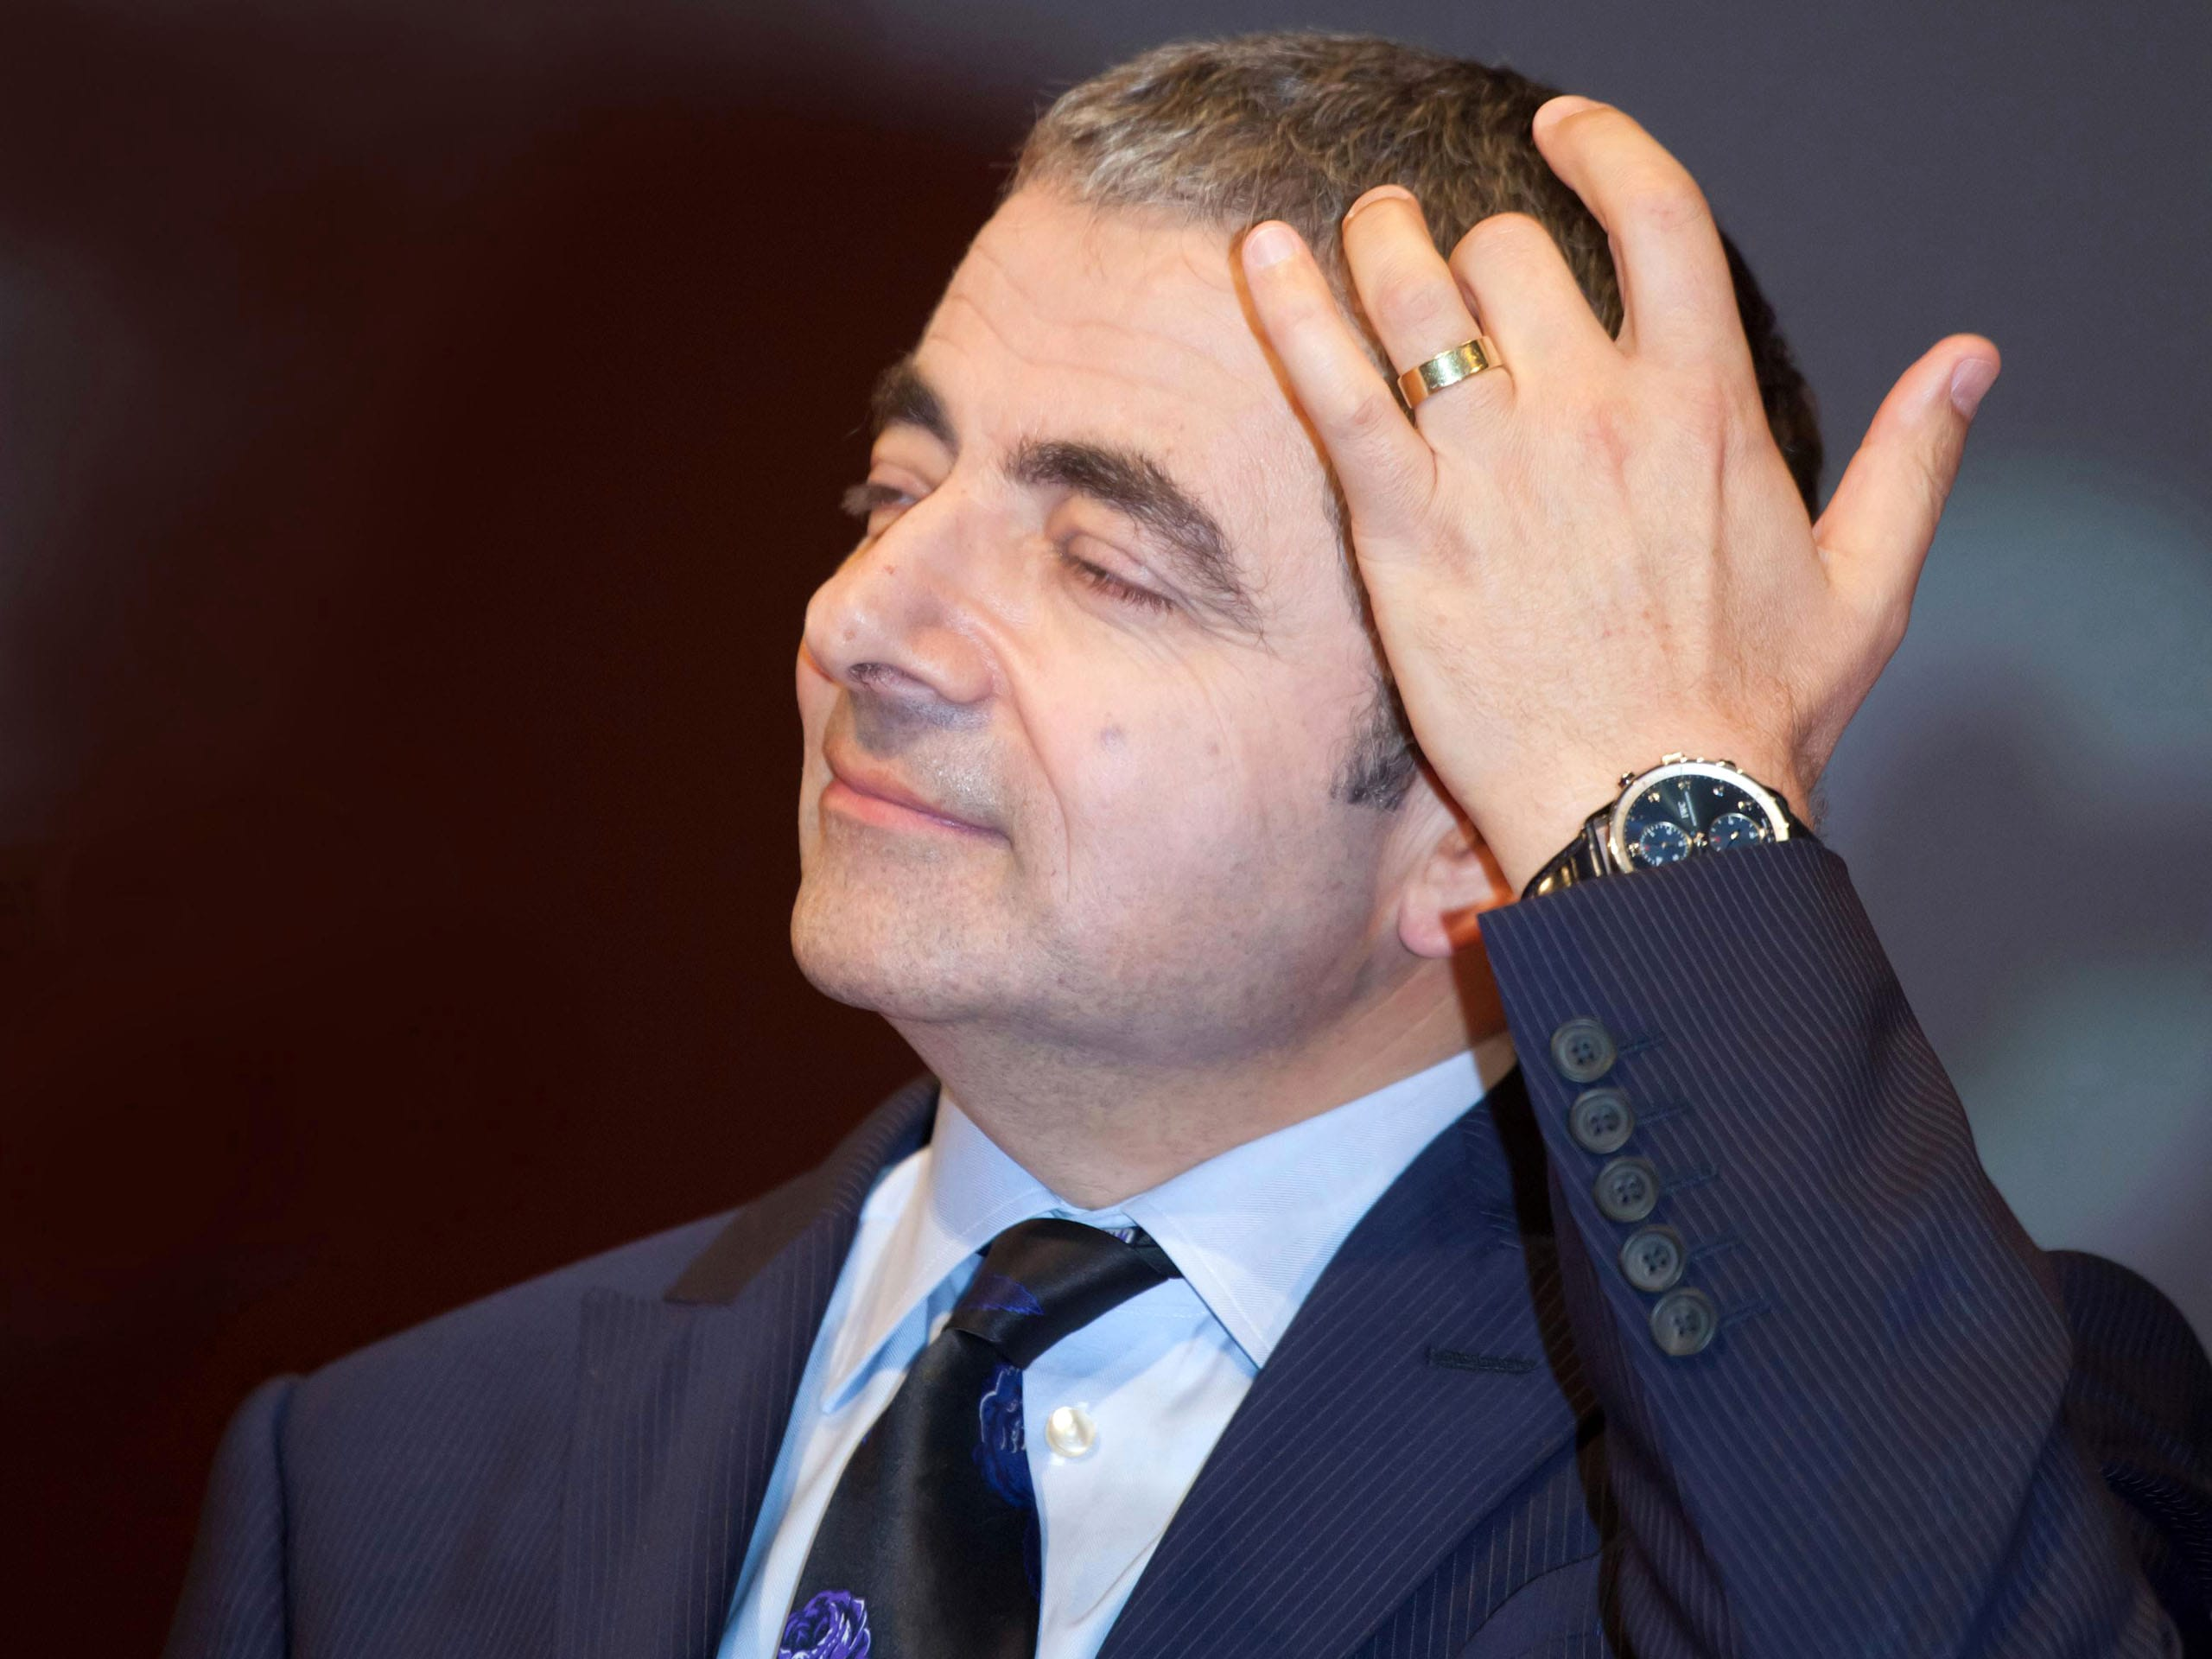 Rowan Atkinson Desktop wallpaper